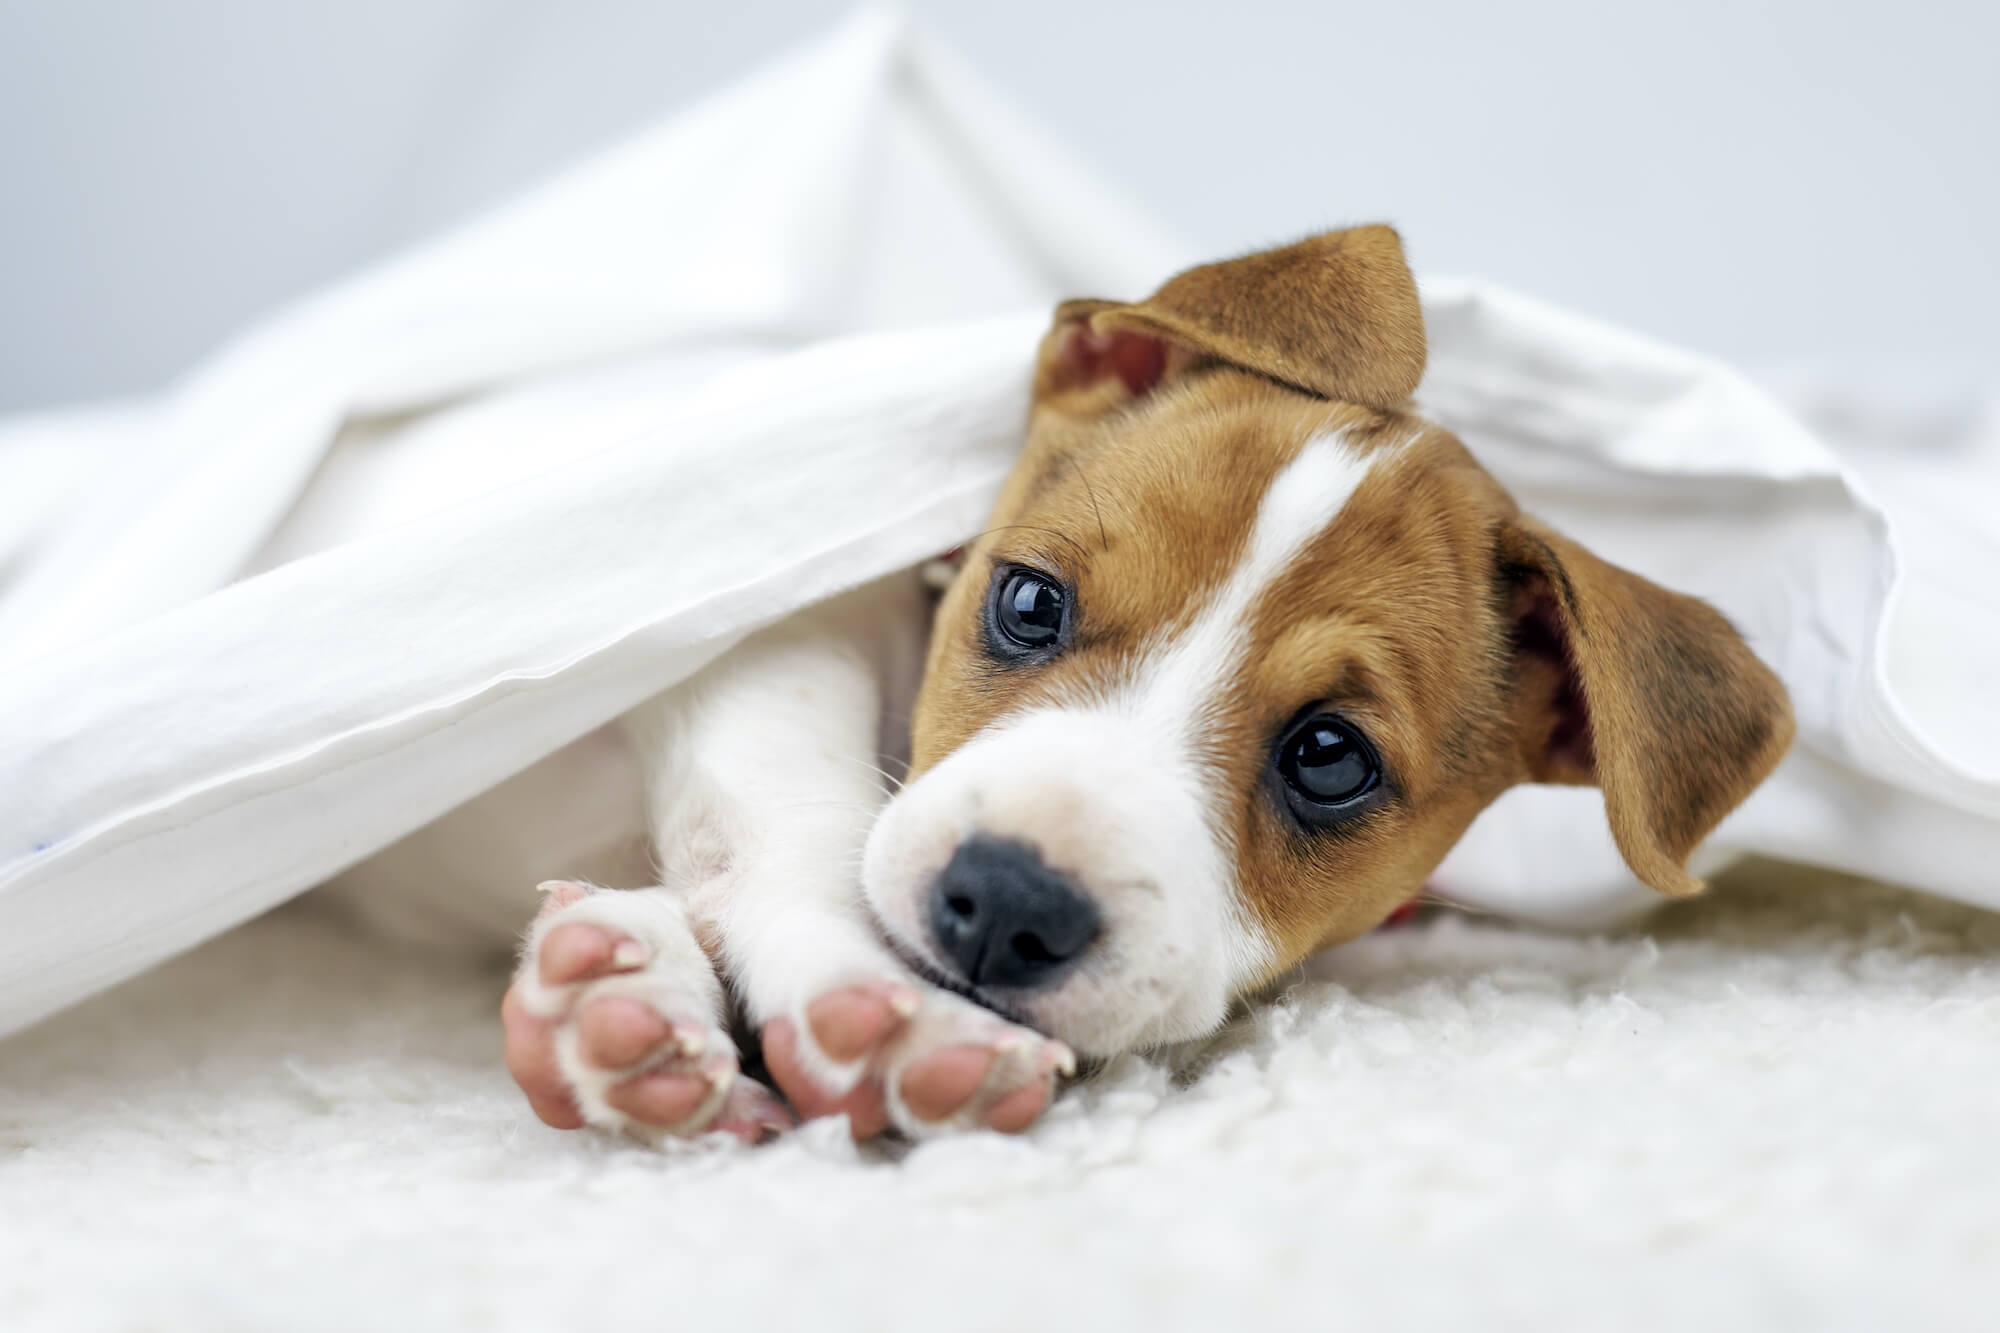 jack-russel-terrier-puppy-PVYUD2A